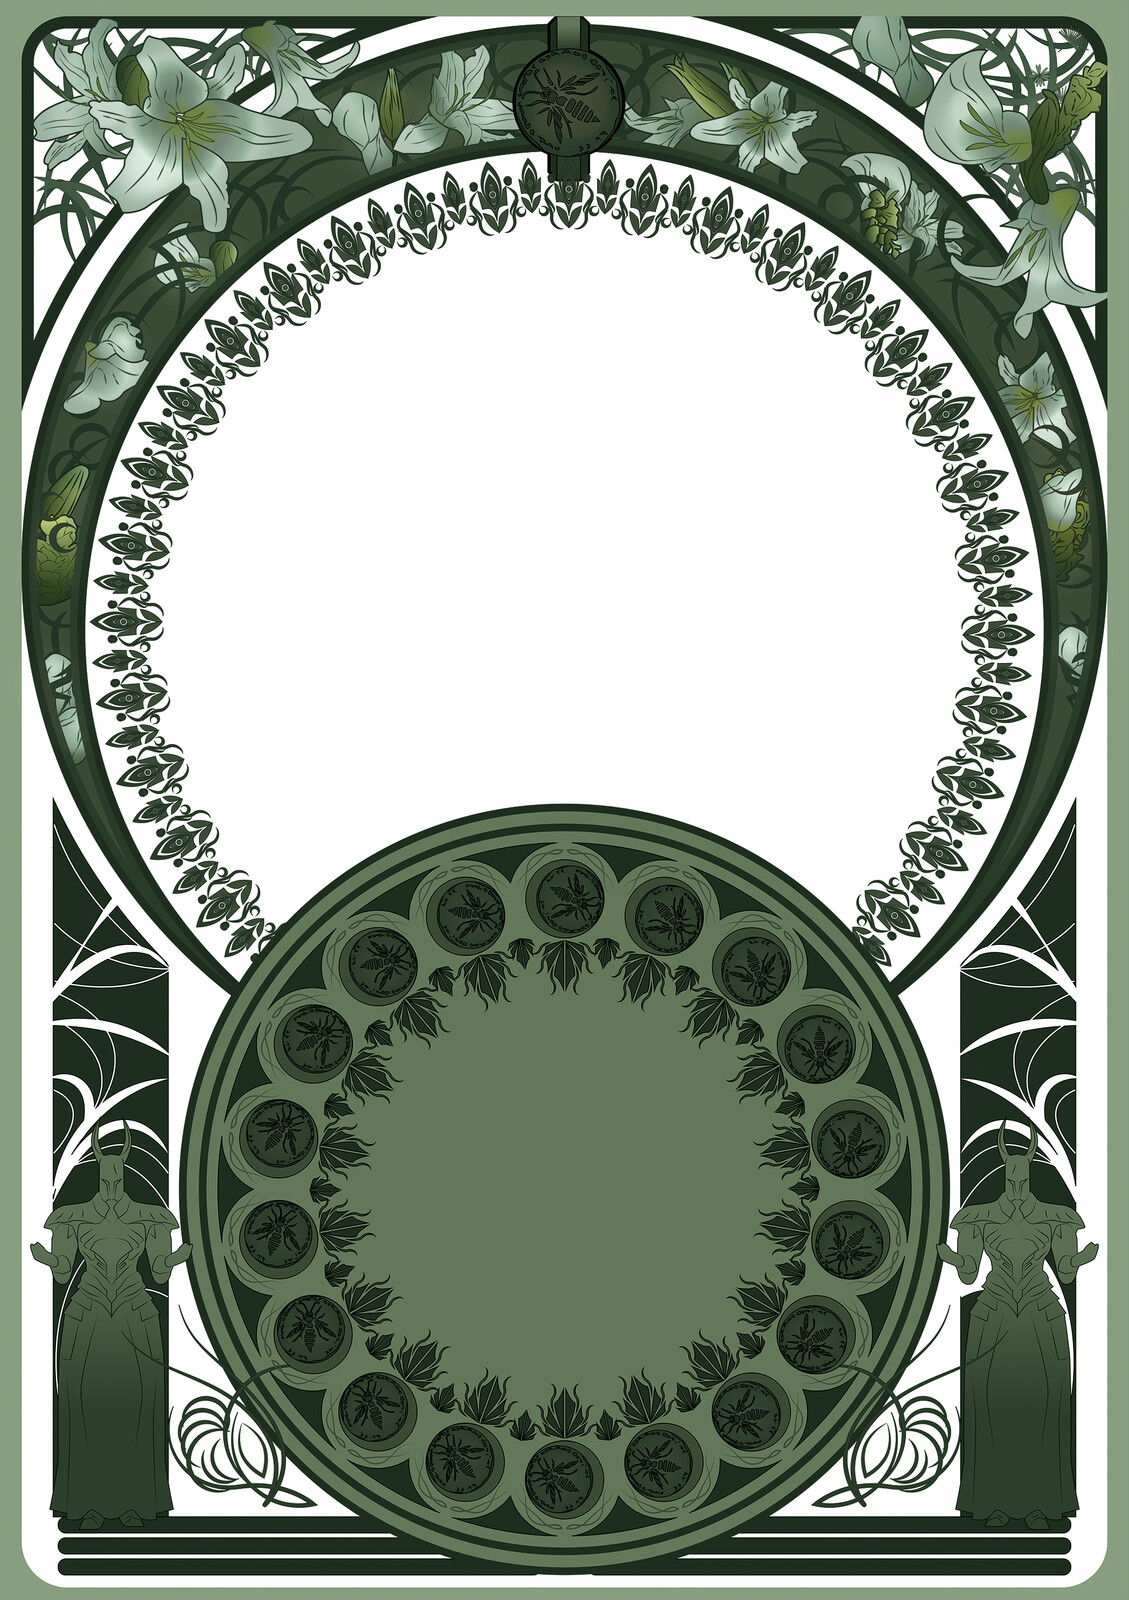 Frame and Architecture made with Illustrator